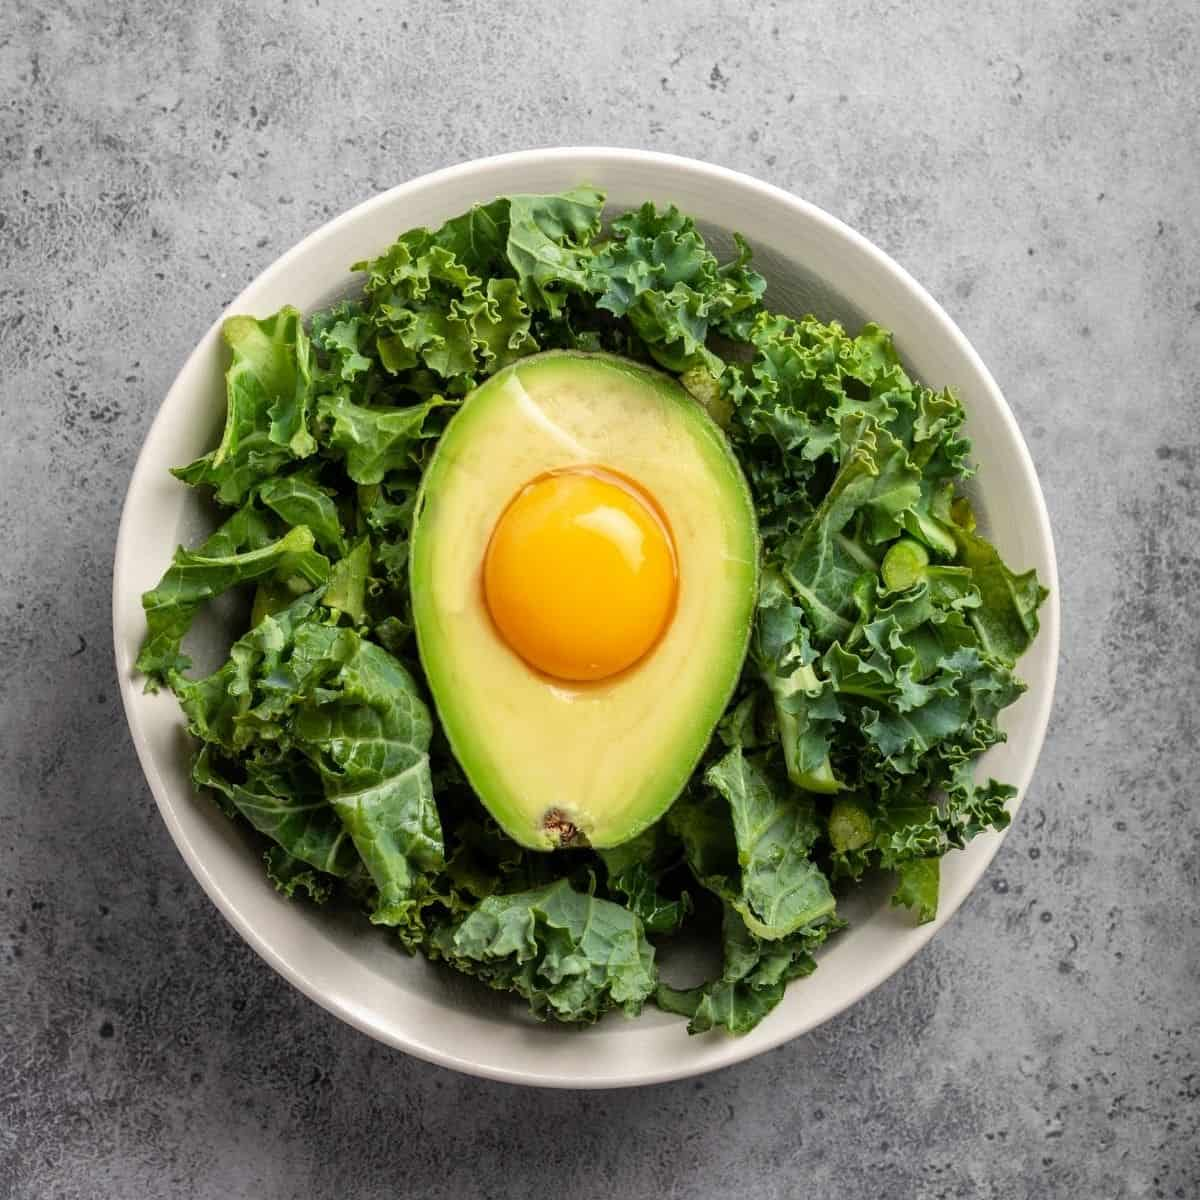 Keto and Low-Carb: What's the Difference?